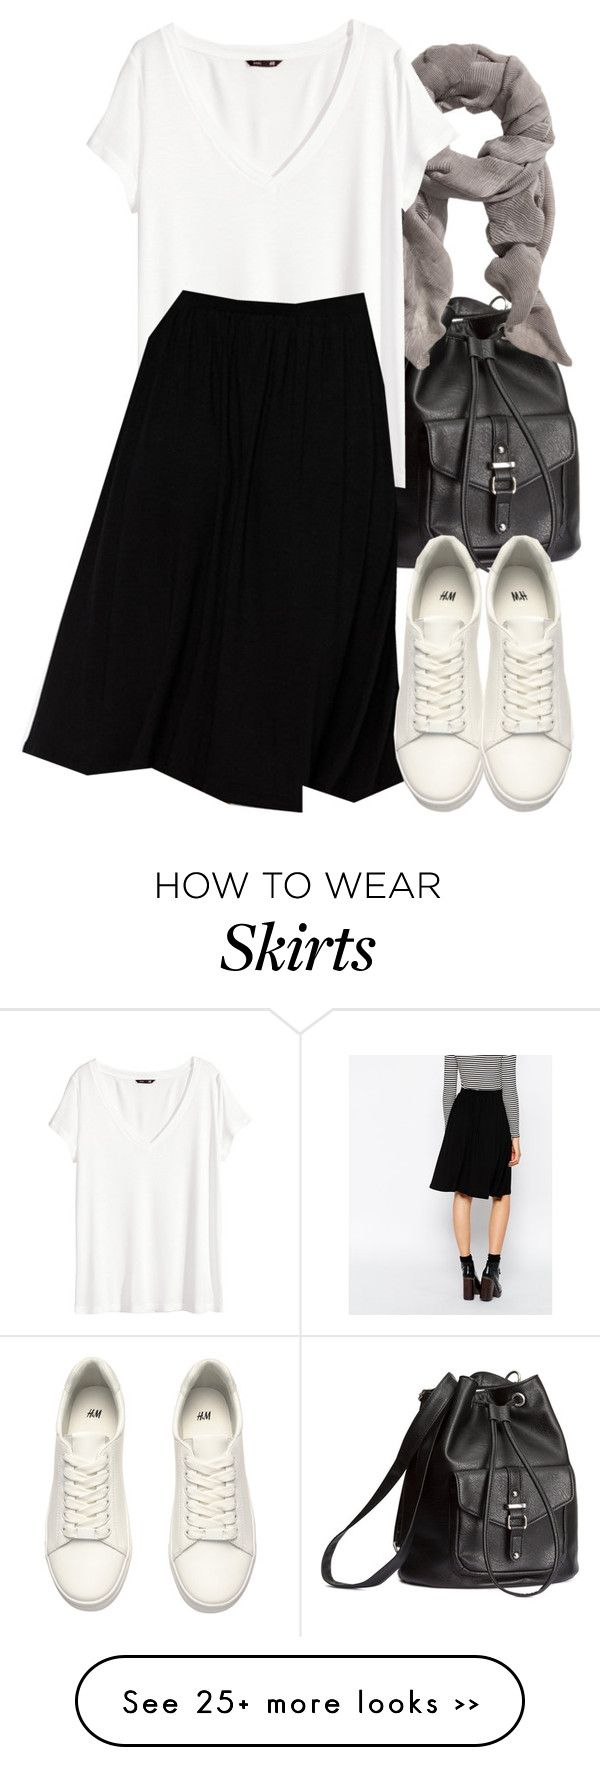 """Isaac Inspired Outfit with a Black Midi Skater Skirt"" by veterization on Polyvore featuring H&M and ASOS"